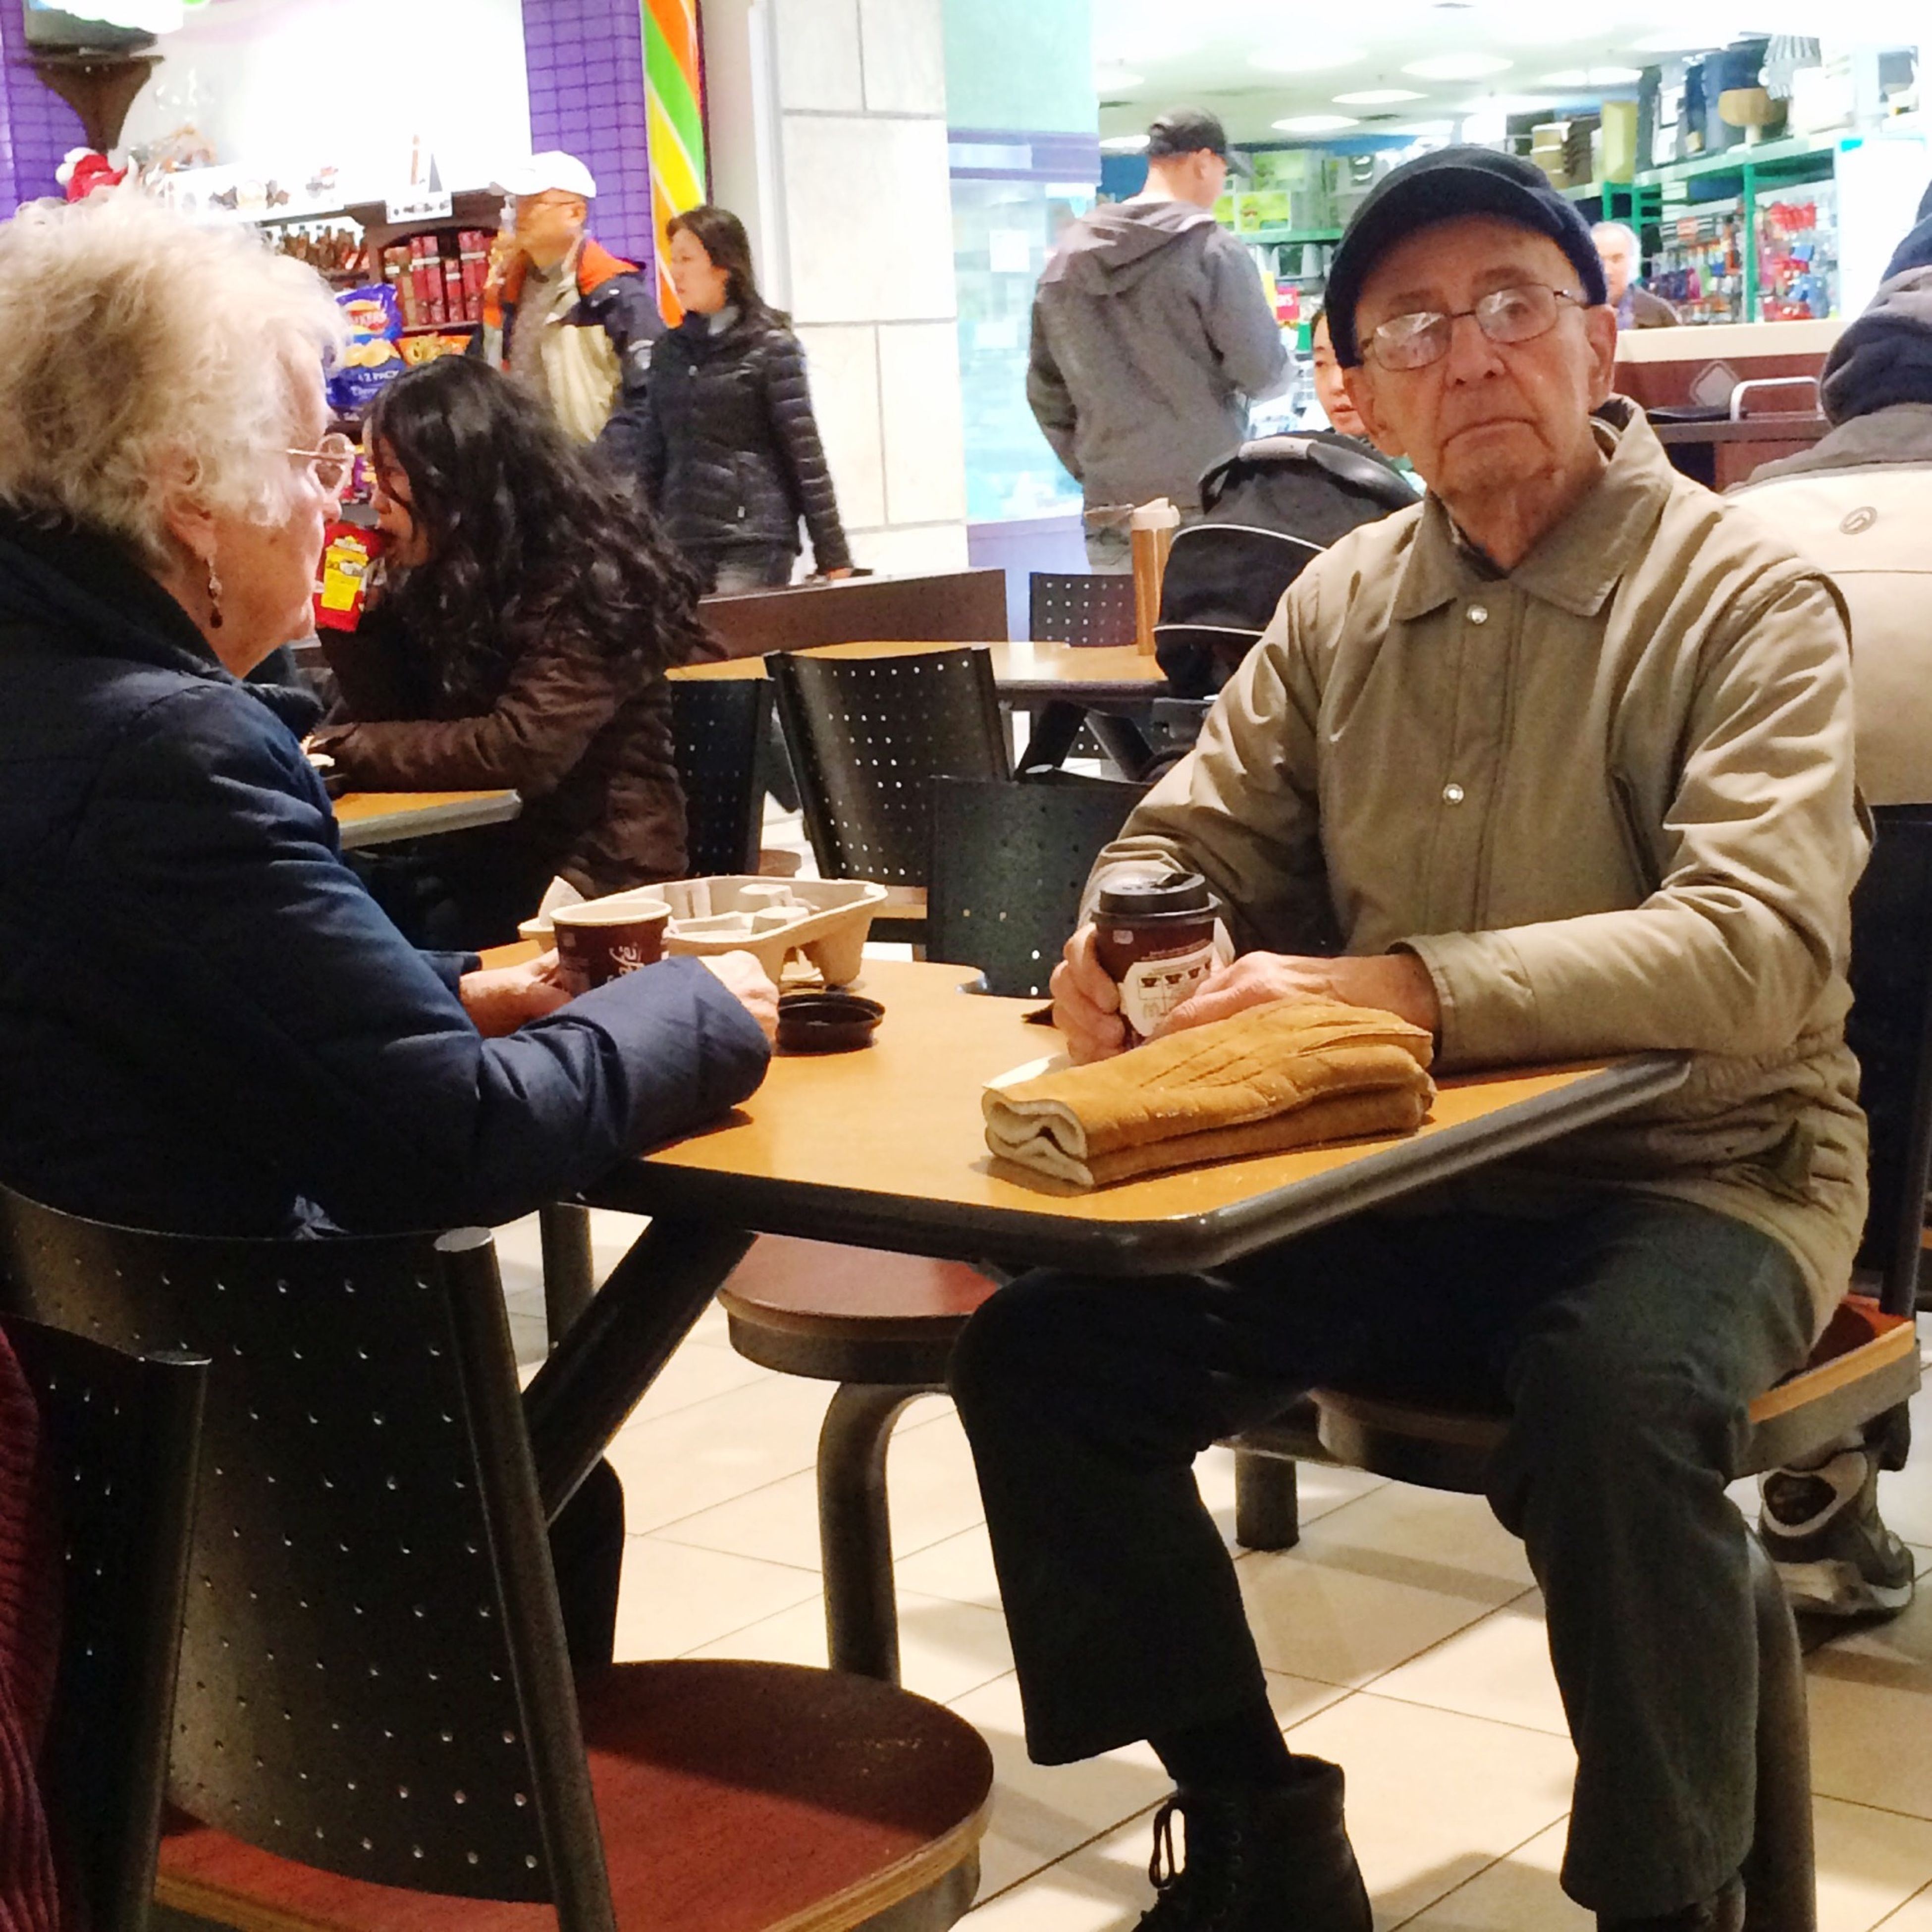 indoors, lifestyles, sitting, casual clothing, togetherness, men, leisure activity, friendship, table, working, bonding, chair, restaurant, young men, person